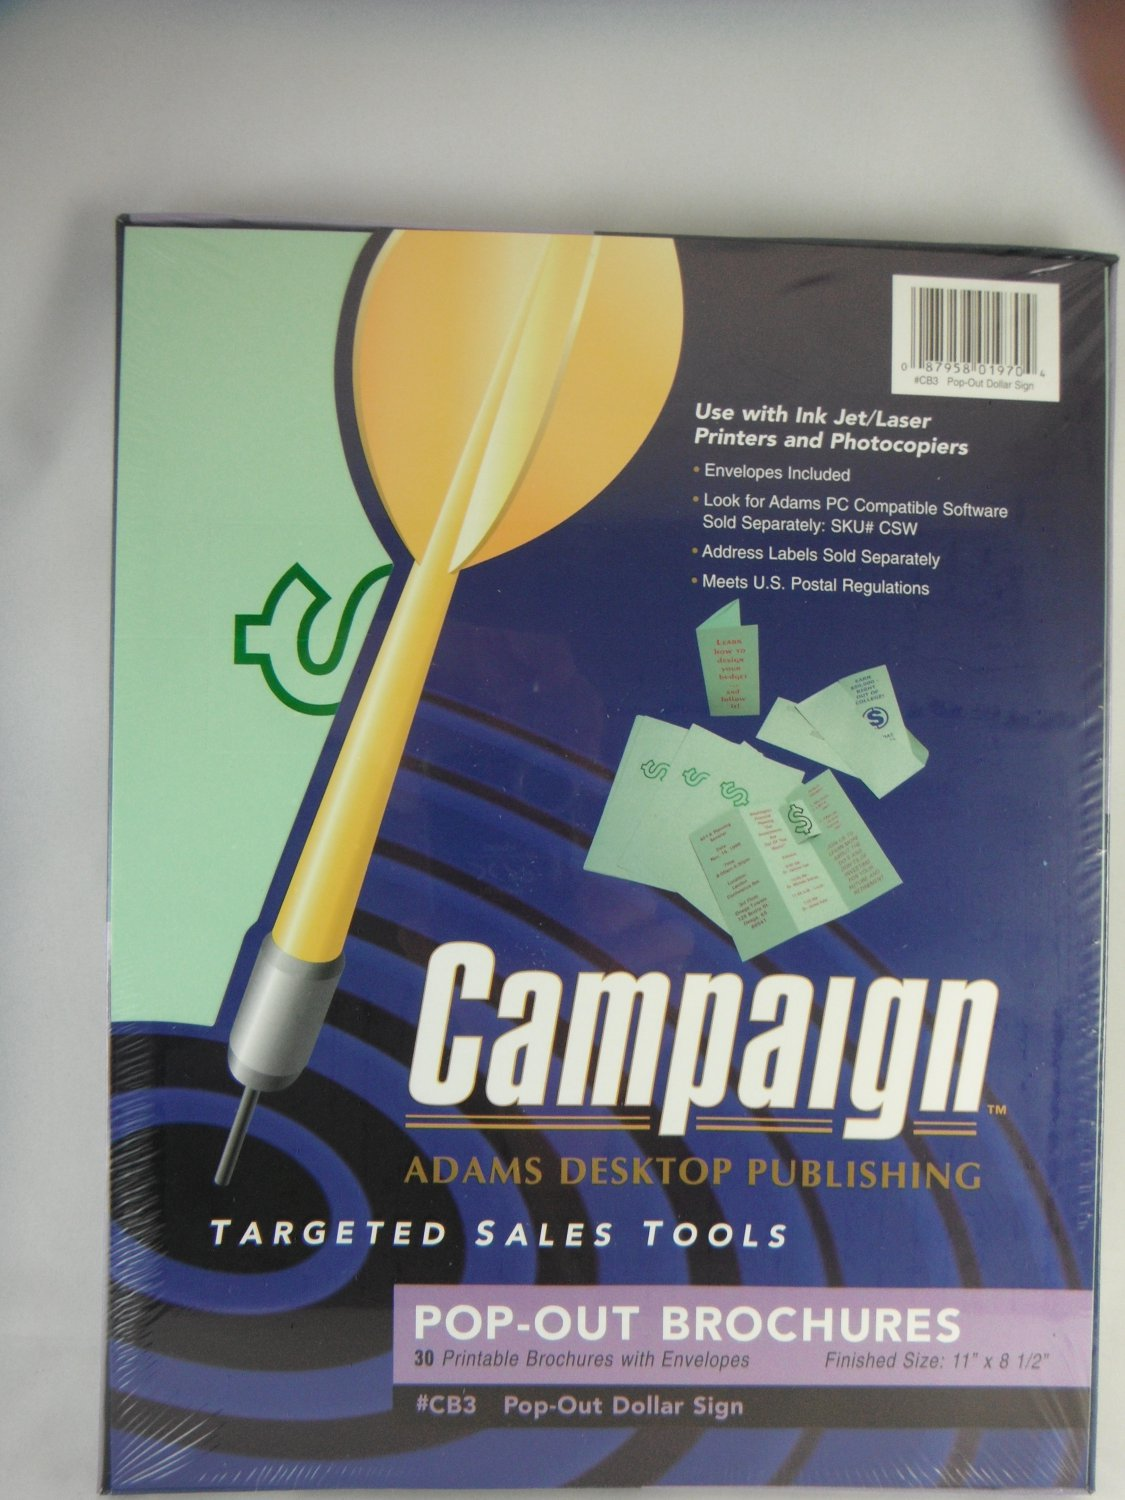 Campaign Adams Desktop Publishing Printable Brochures With Envelopes tblhx1